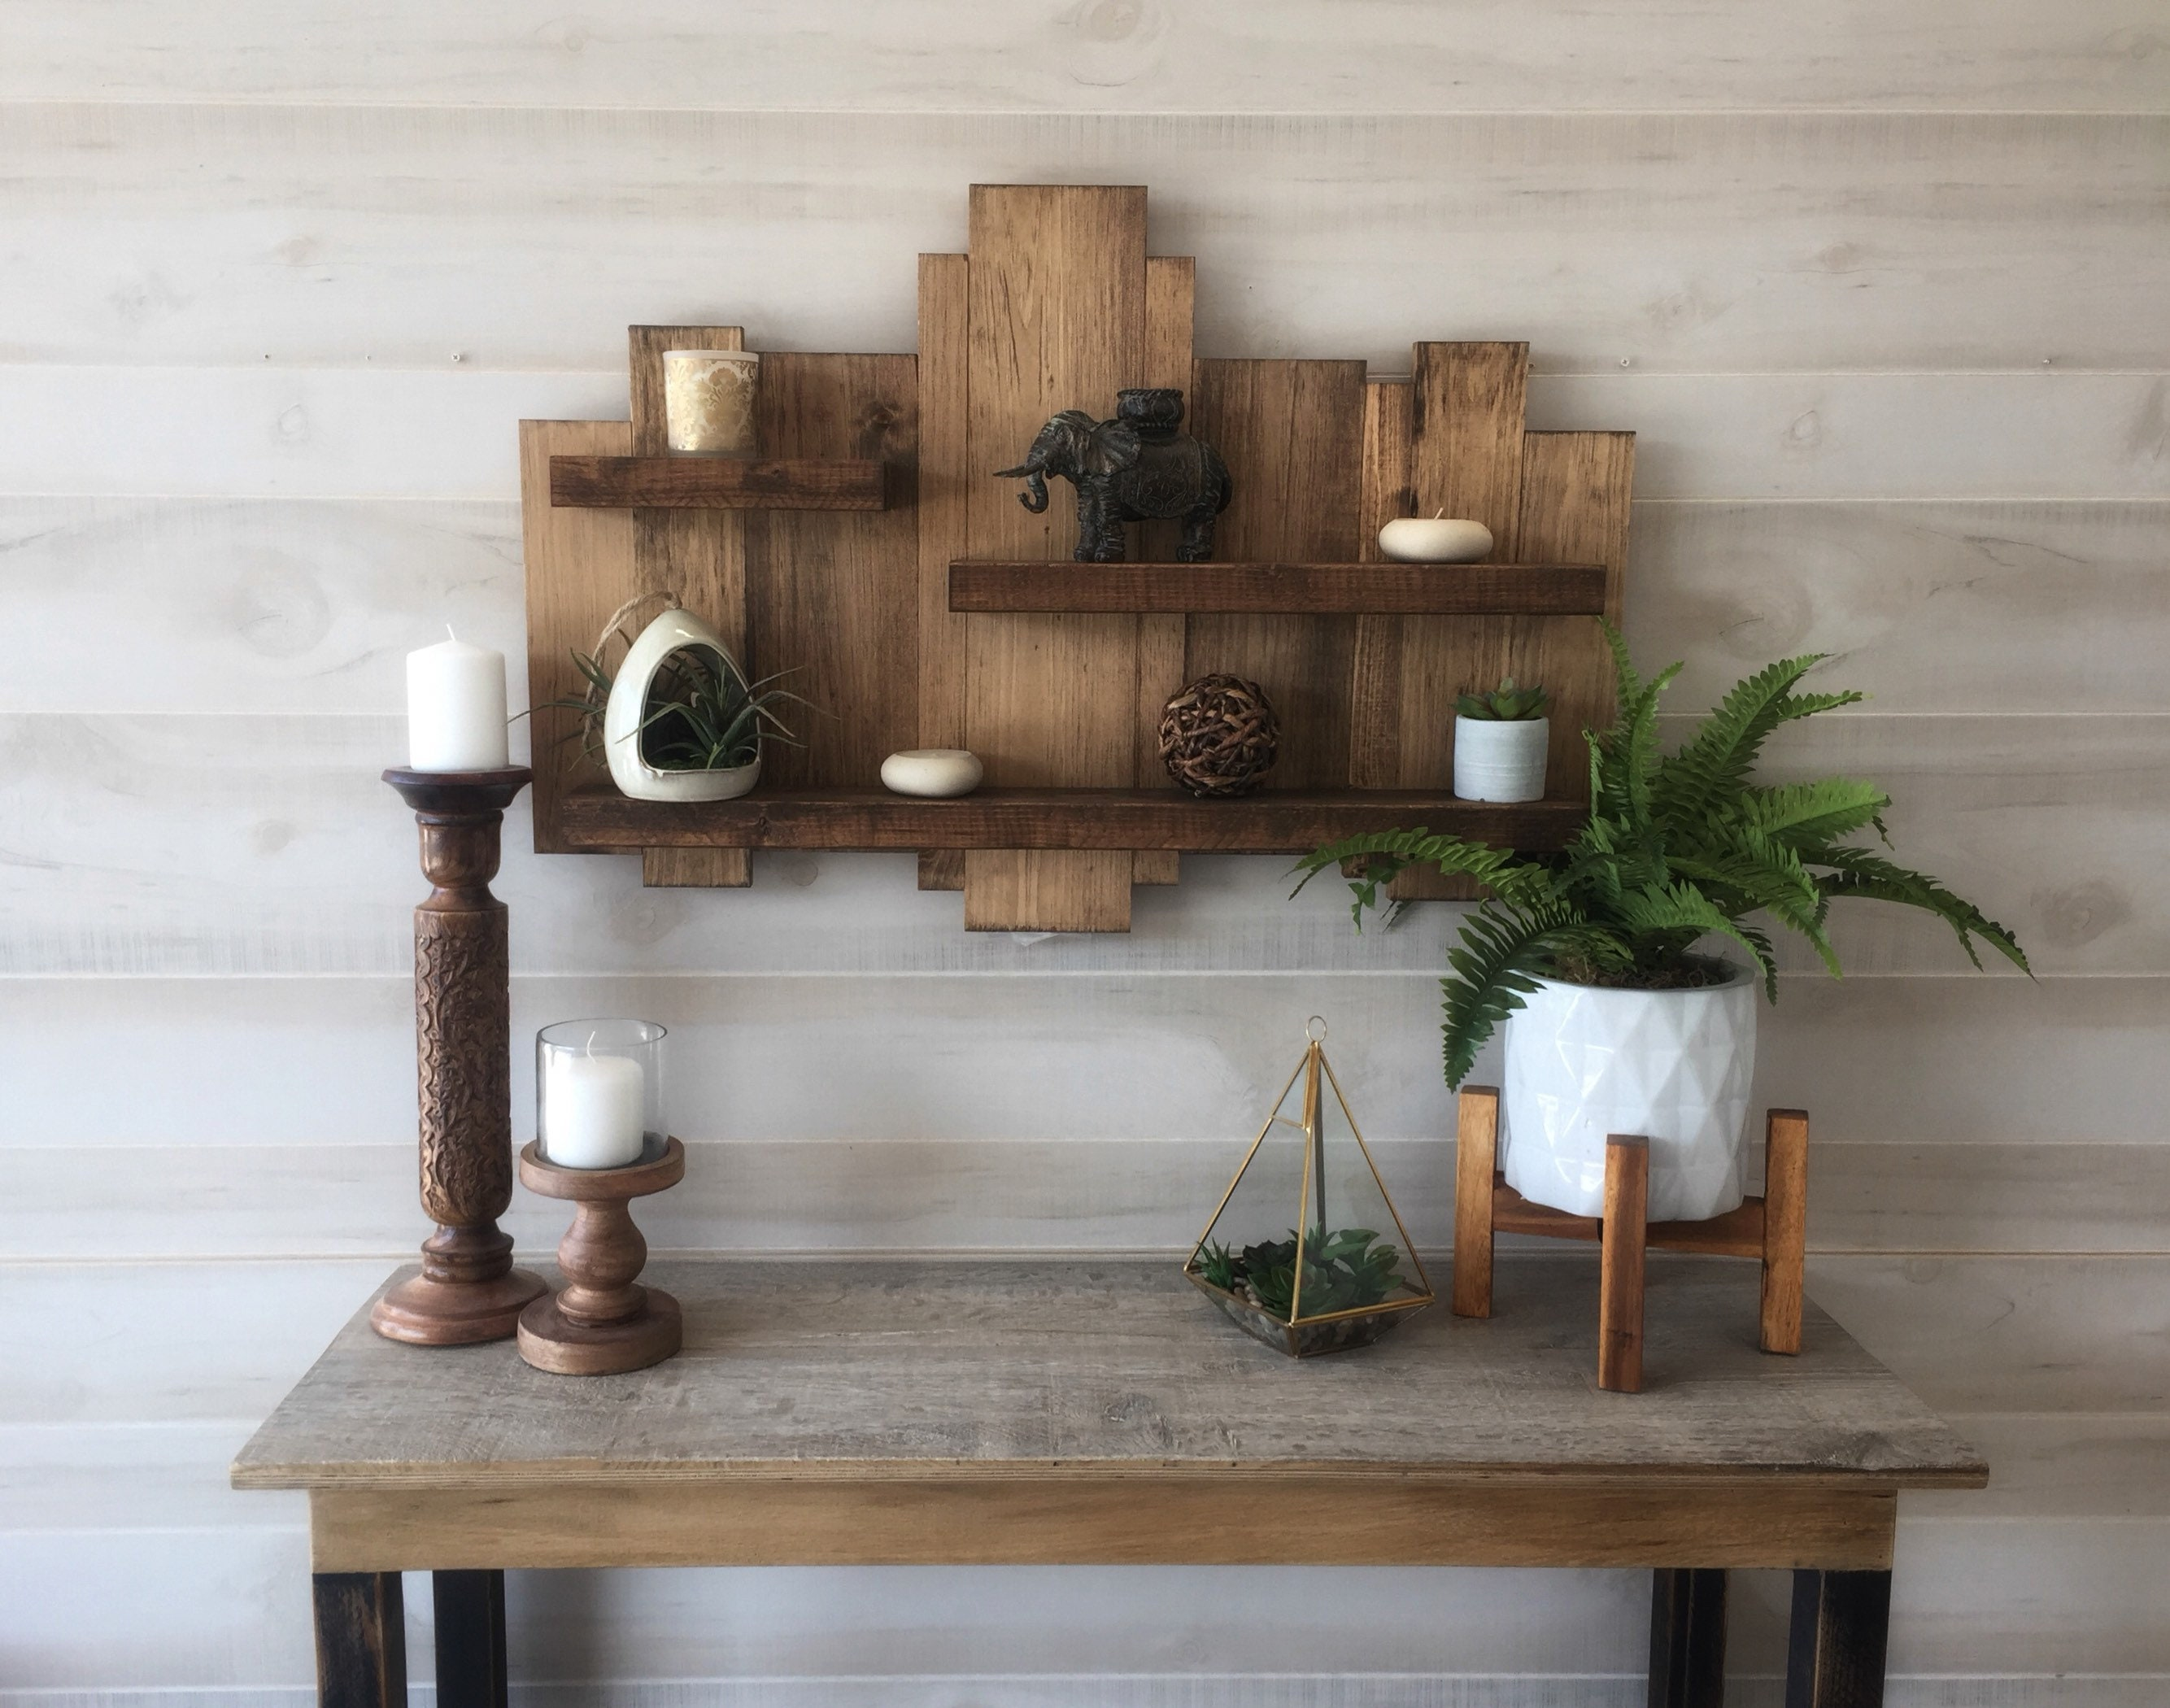 Rustic wall shelf reclaimed wood wall shelf pallet shelf floating shelf wood wall art rustic decor farmhouse decor pallet furniture